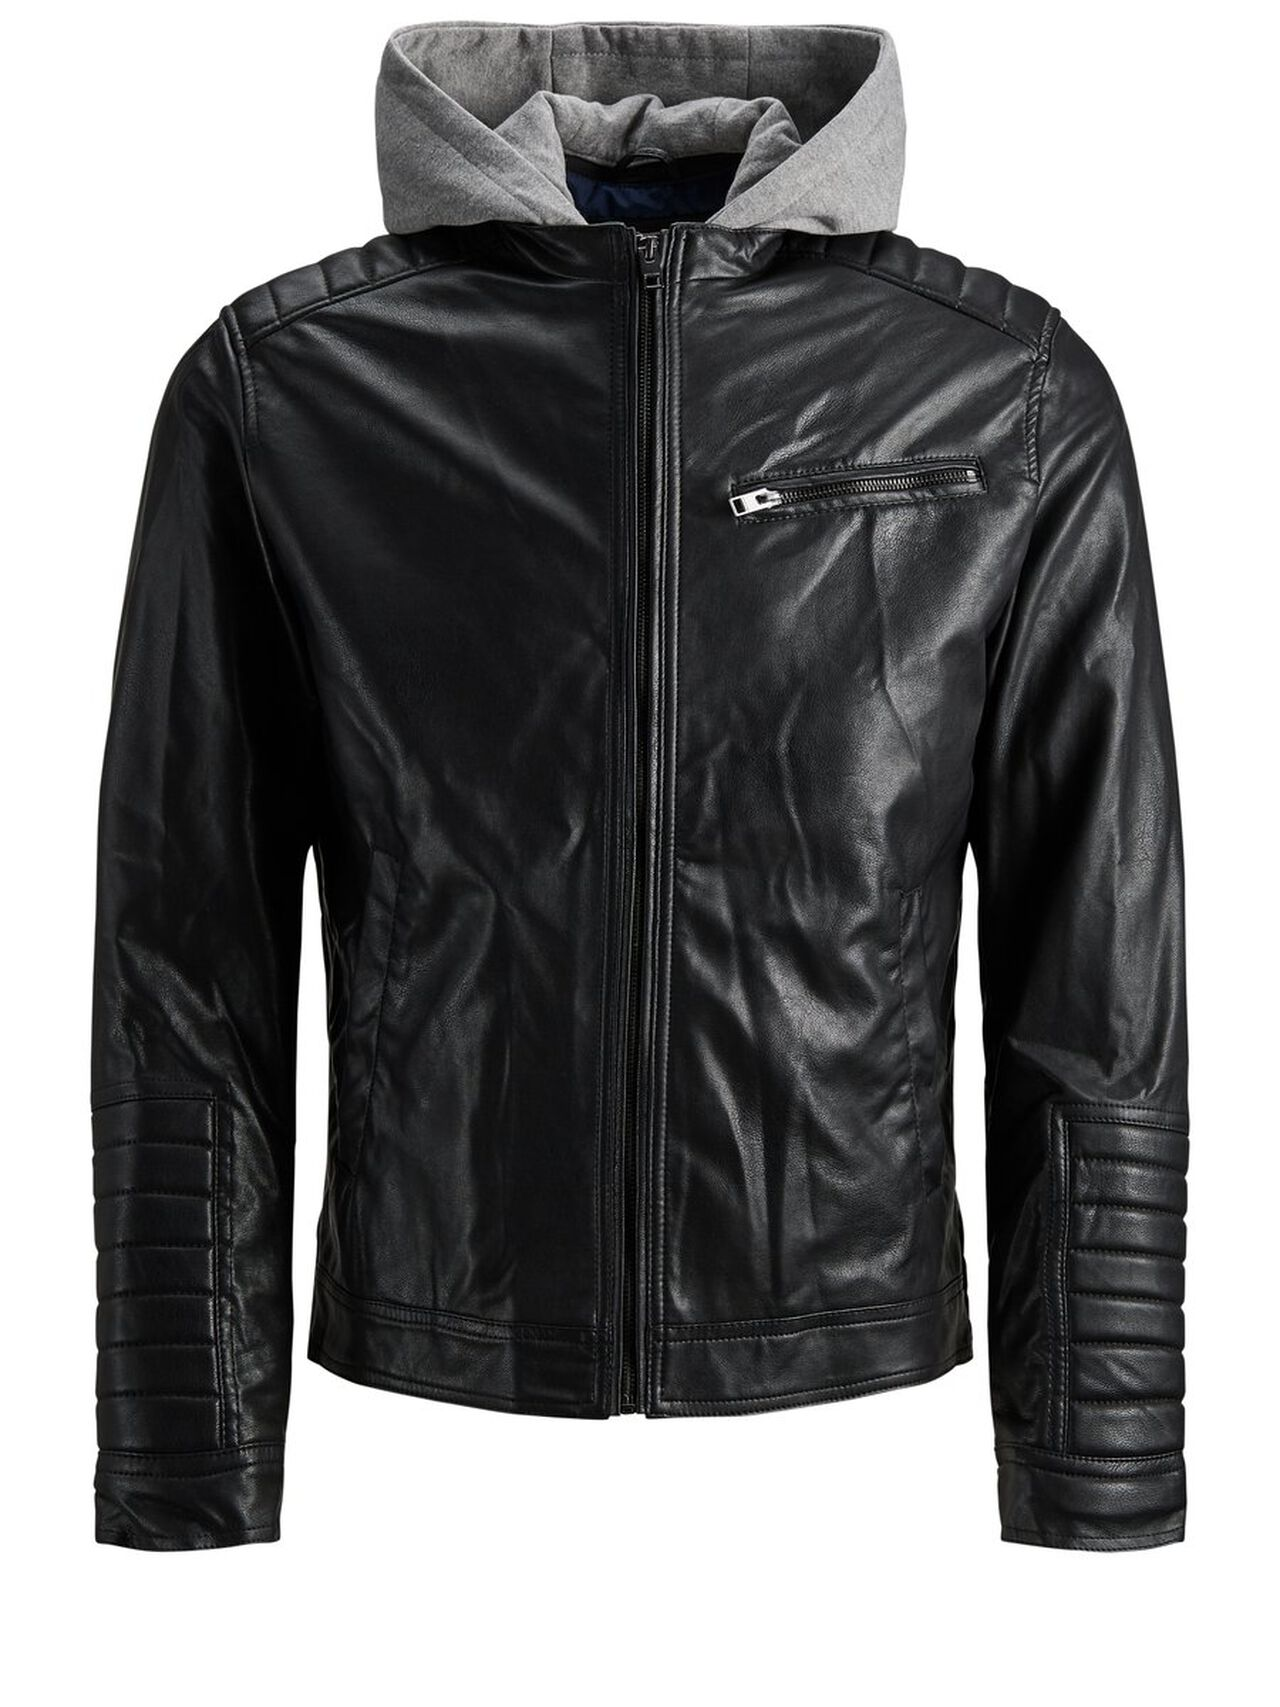 Image of JACK & JONES 2-i-1 Biker-style Jakke Mænd Sort (23250716123)